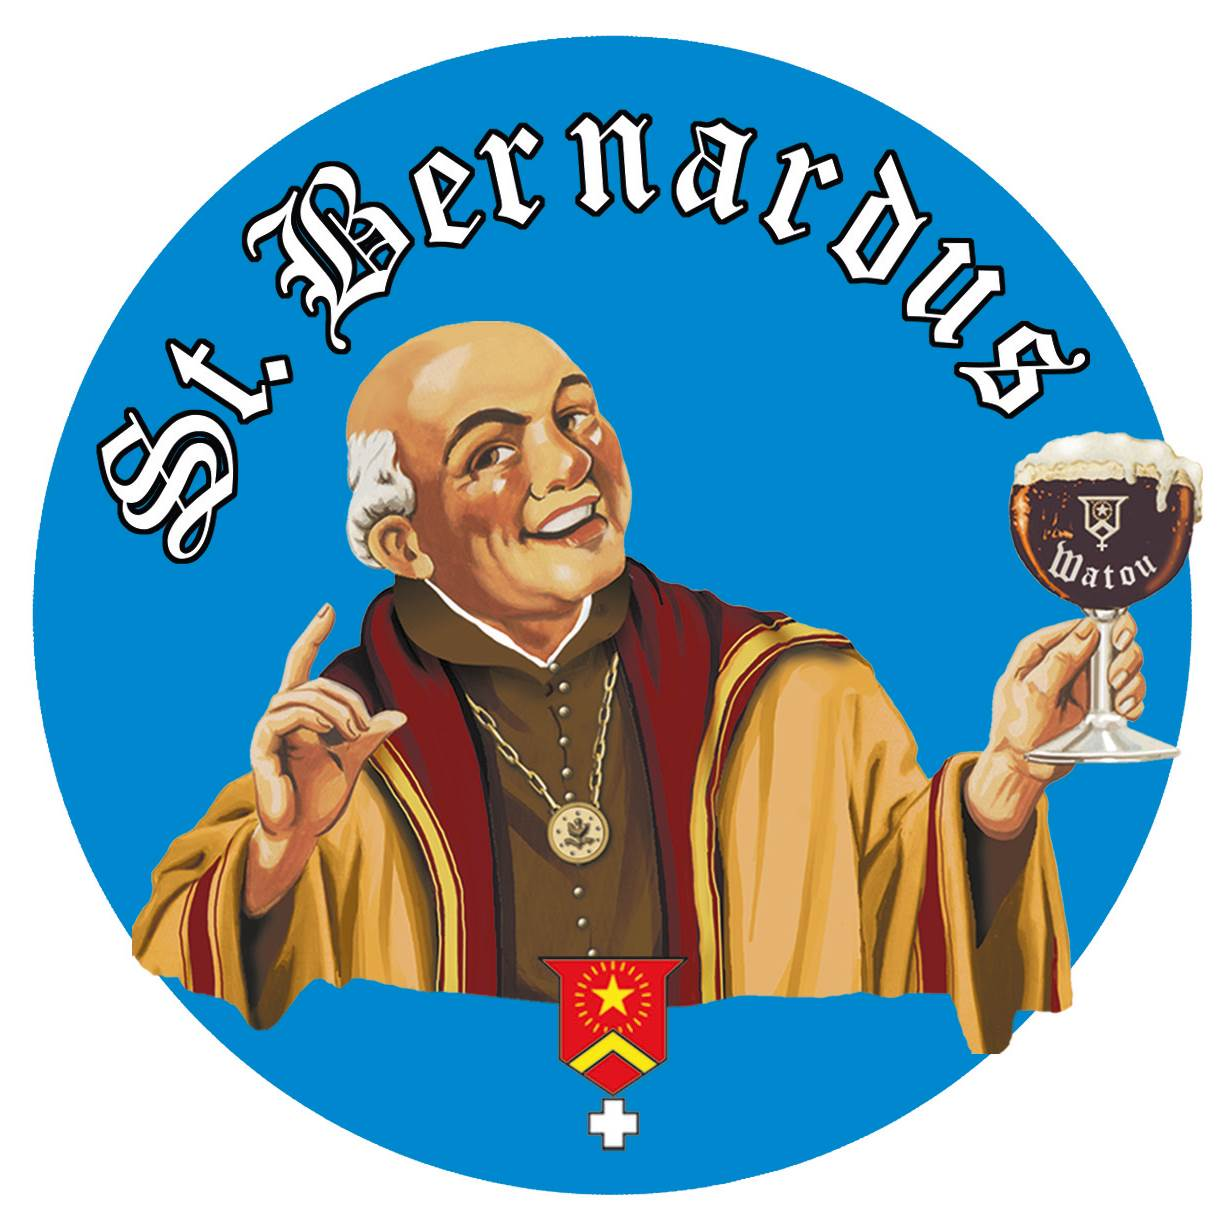 Thursday, July 20th @ 6pm A Night with St Bernardus featuring Barrel Aged Abt 12